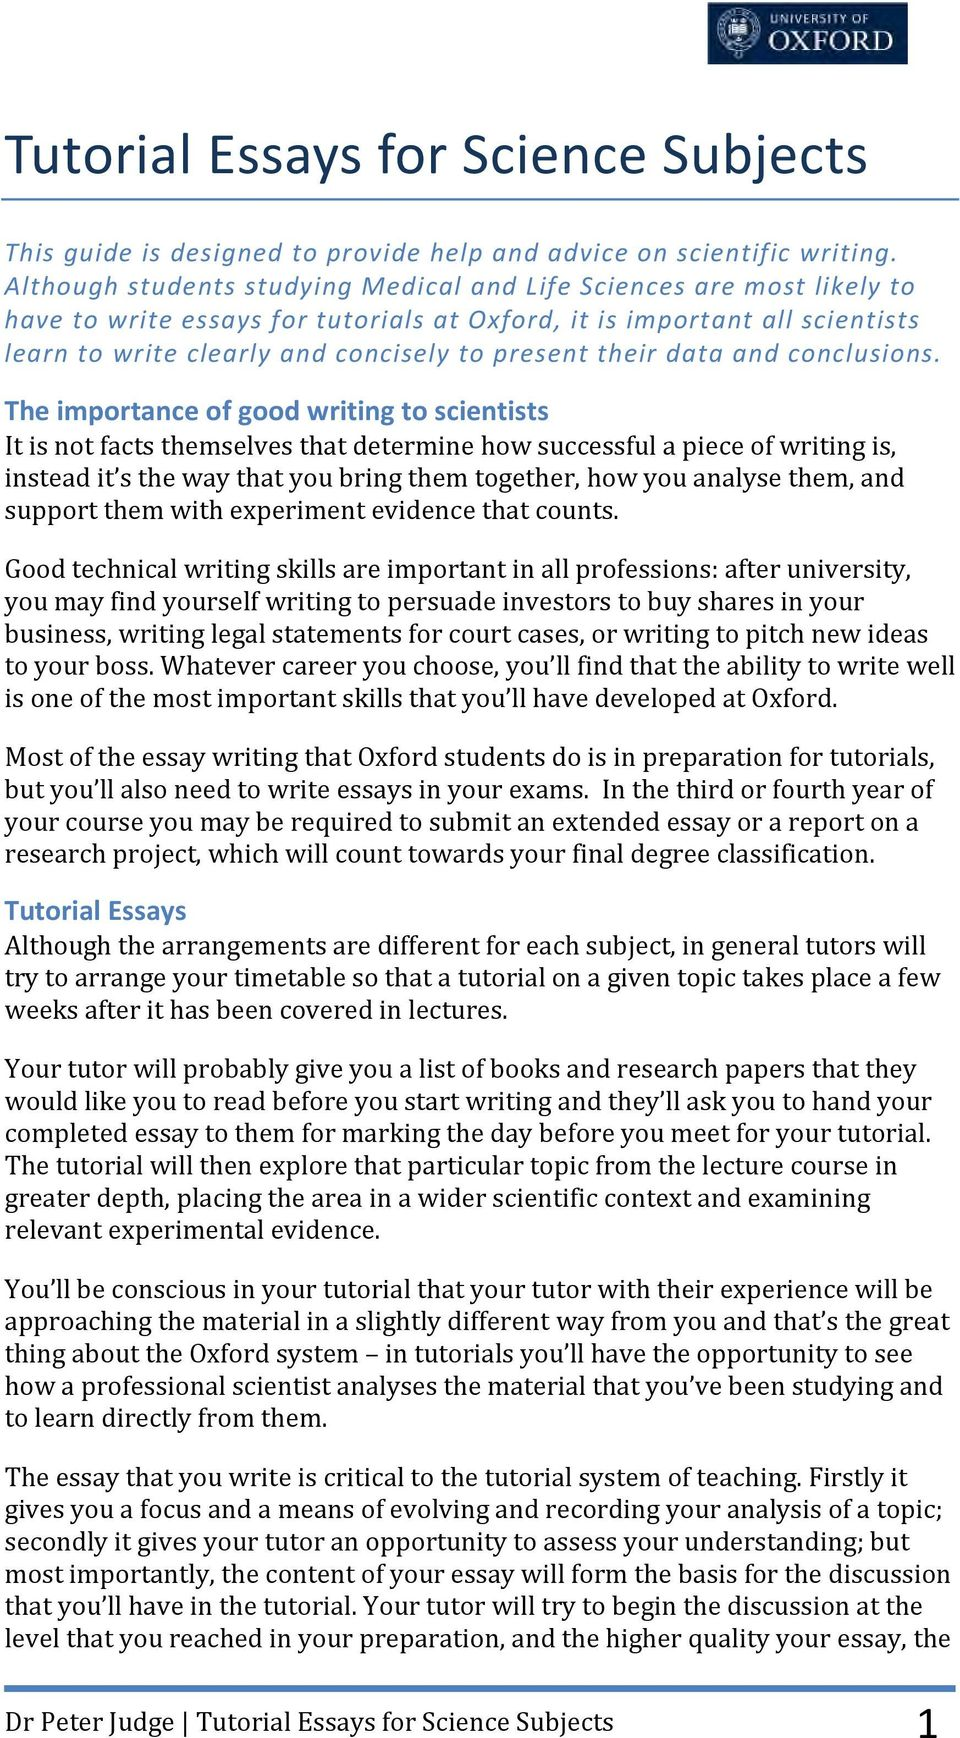 What Is The Thesis In An Essay  Autobiography Essay Examples also Synthesis Essay Topics Tutorial Essays For Science Subjects  Pdf Descriptive Essay